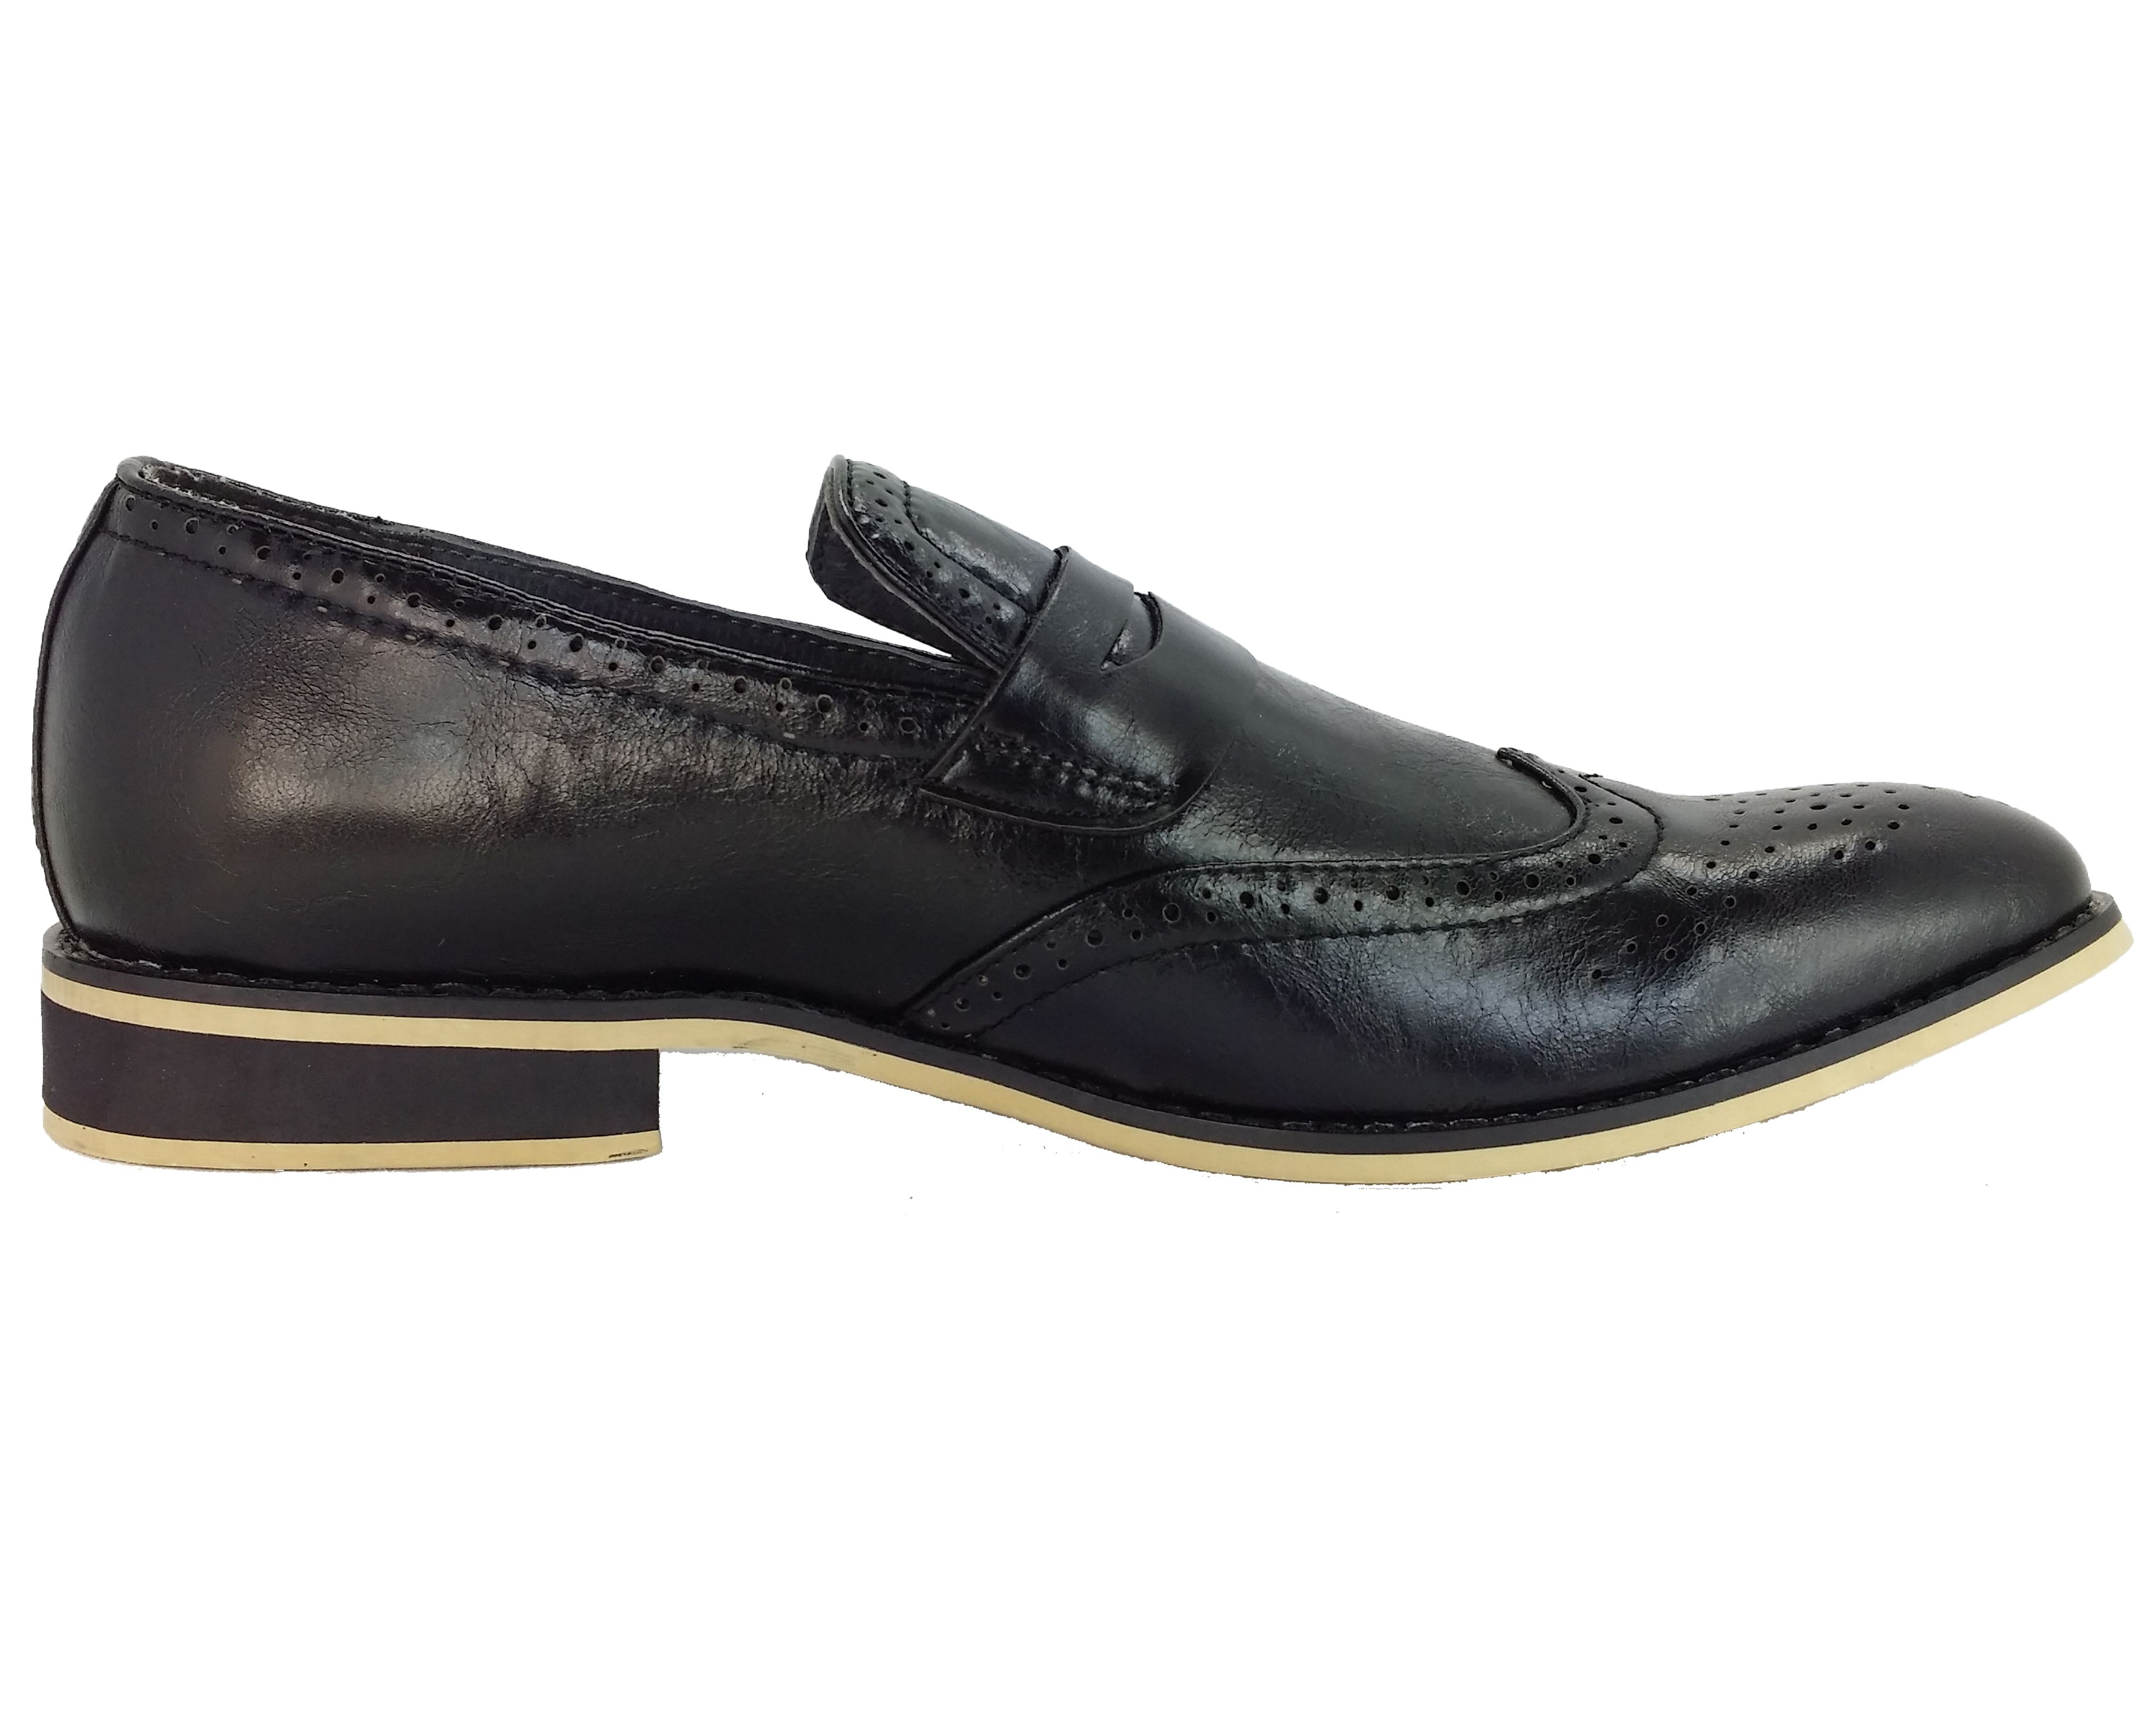 new mens dress shoes martello handmade black wingtip slip